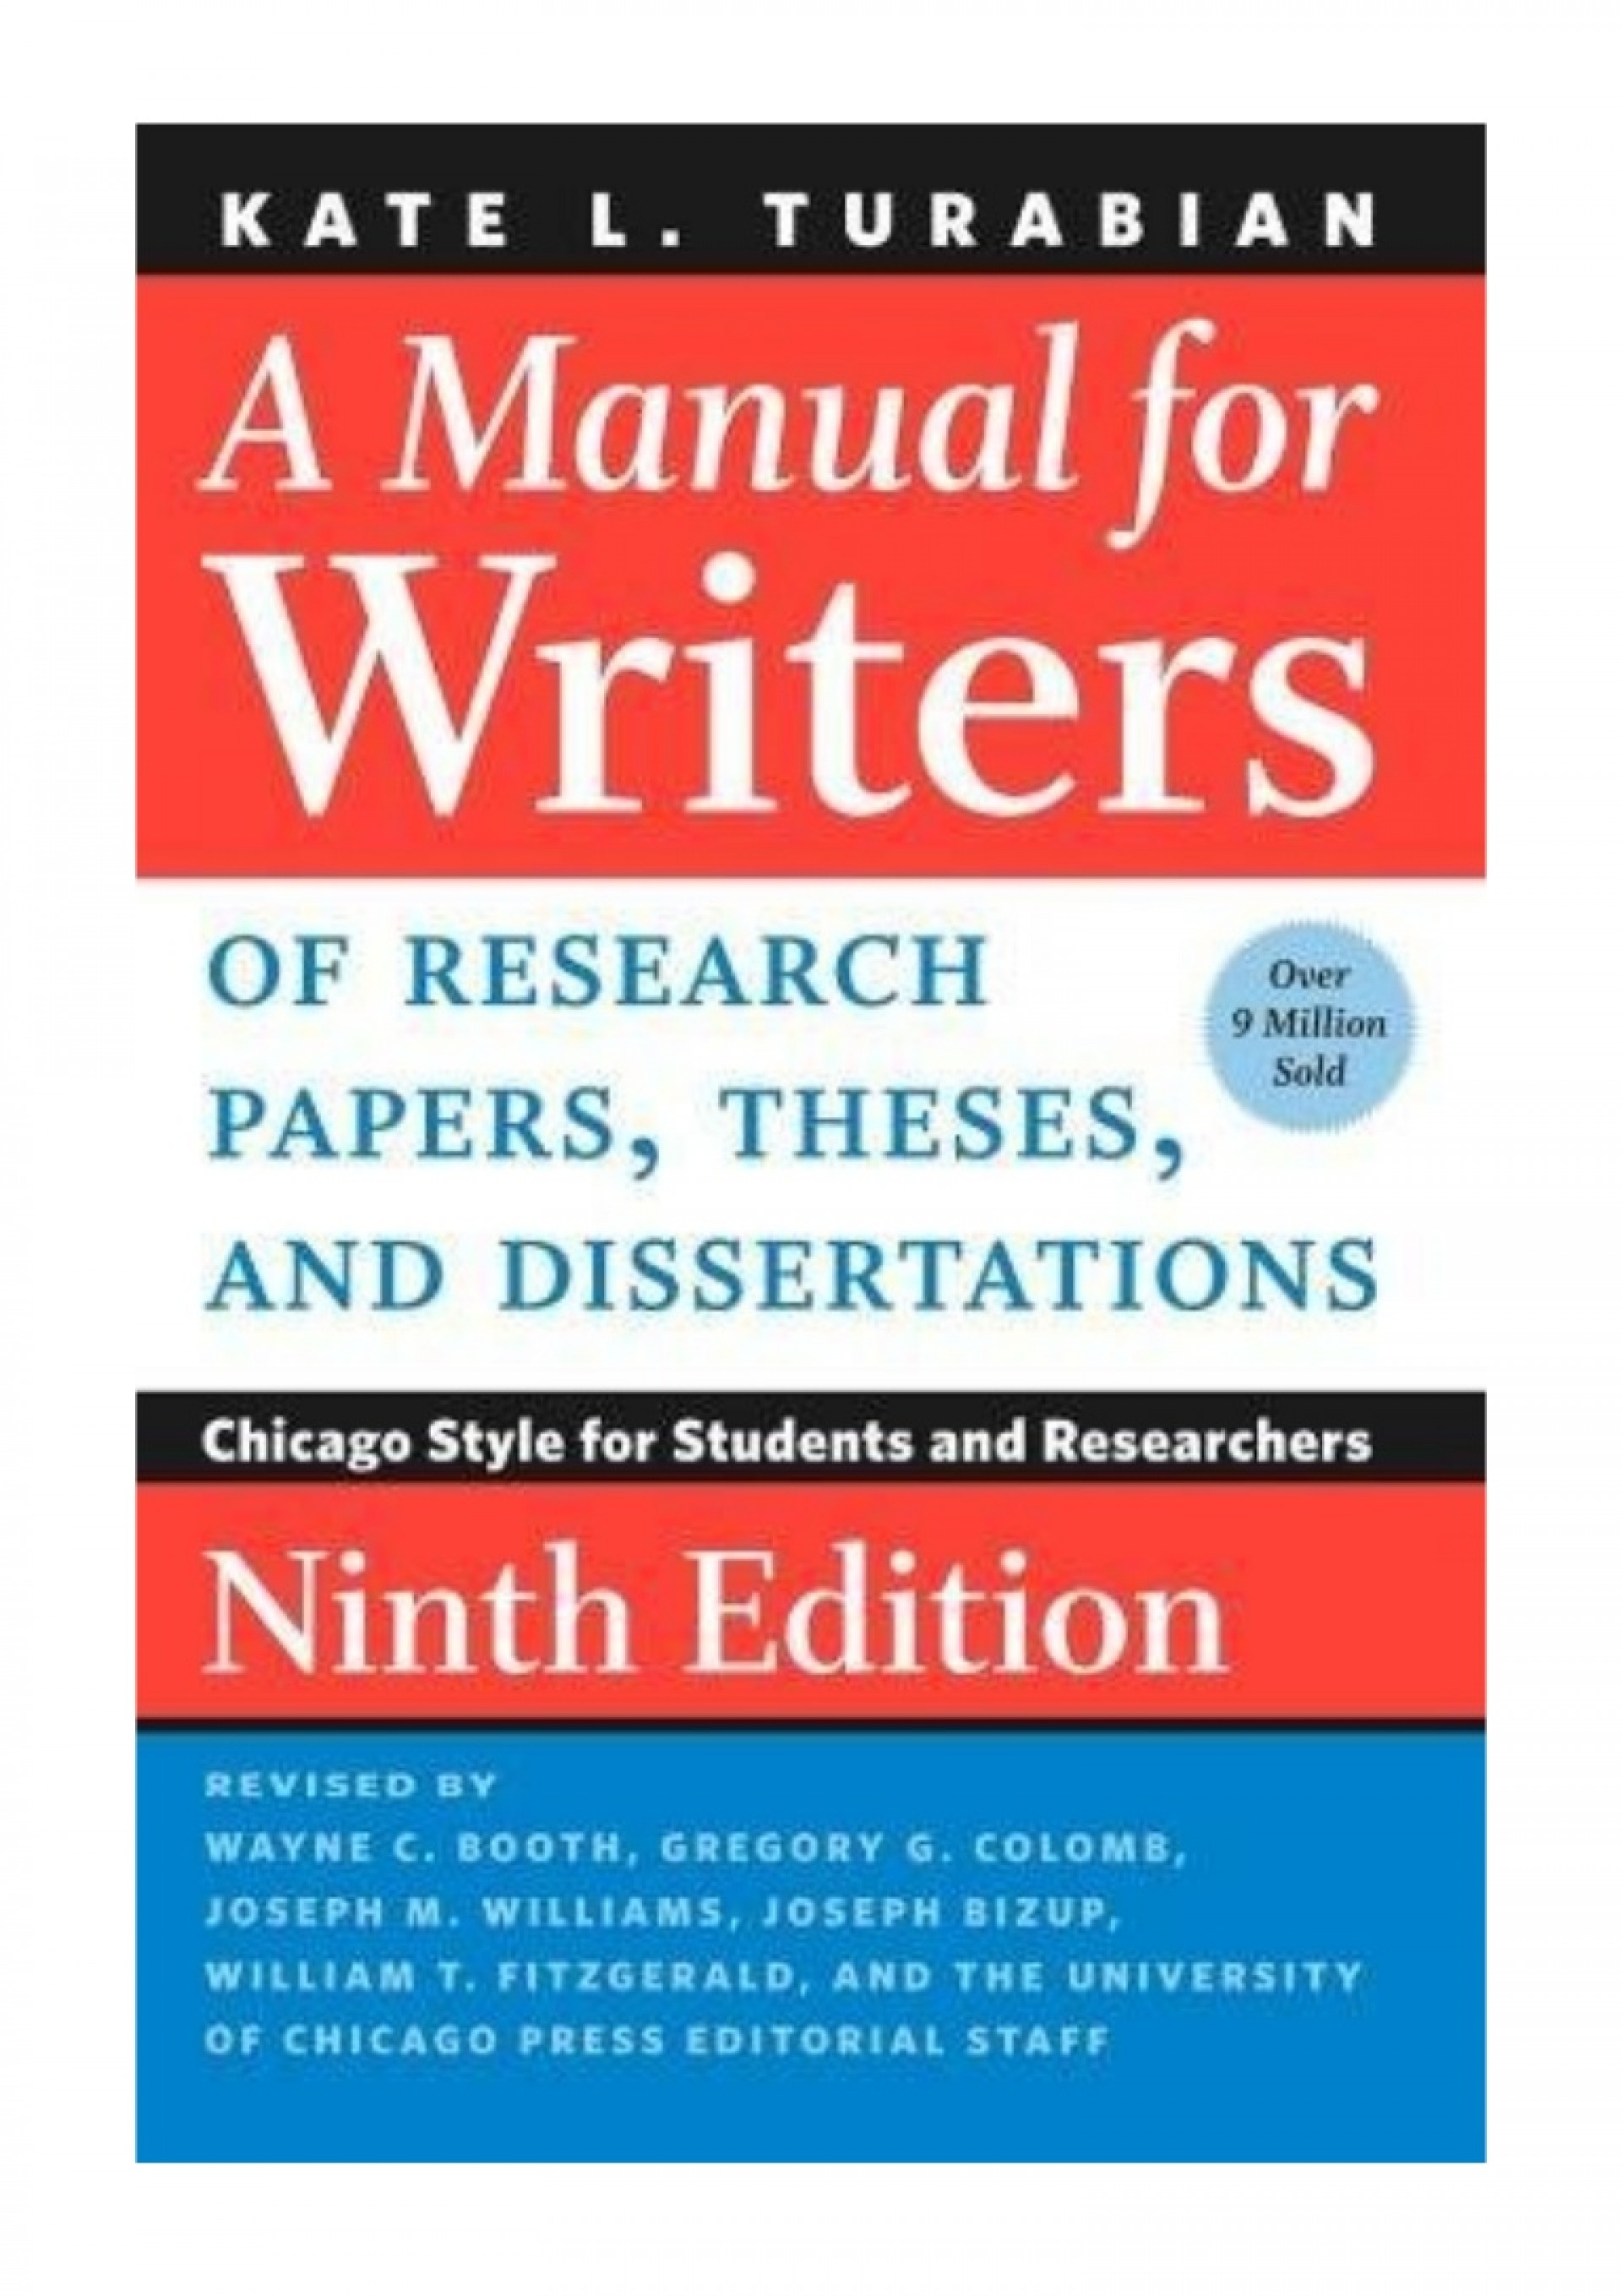 008 Research Paper 022643057x Amanualforwritersofresearchpapersthesesanddissertationsnintheditionbykatel Thumbnail Manual For Writers Of Papers Theses And Amazing A Dissertations Turabian Pdf 1920